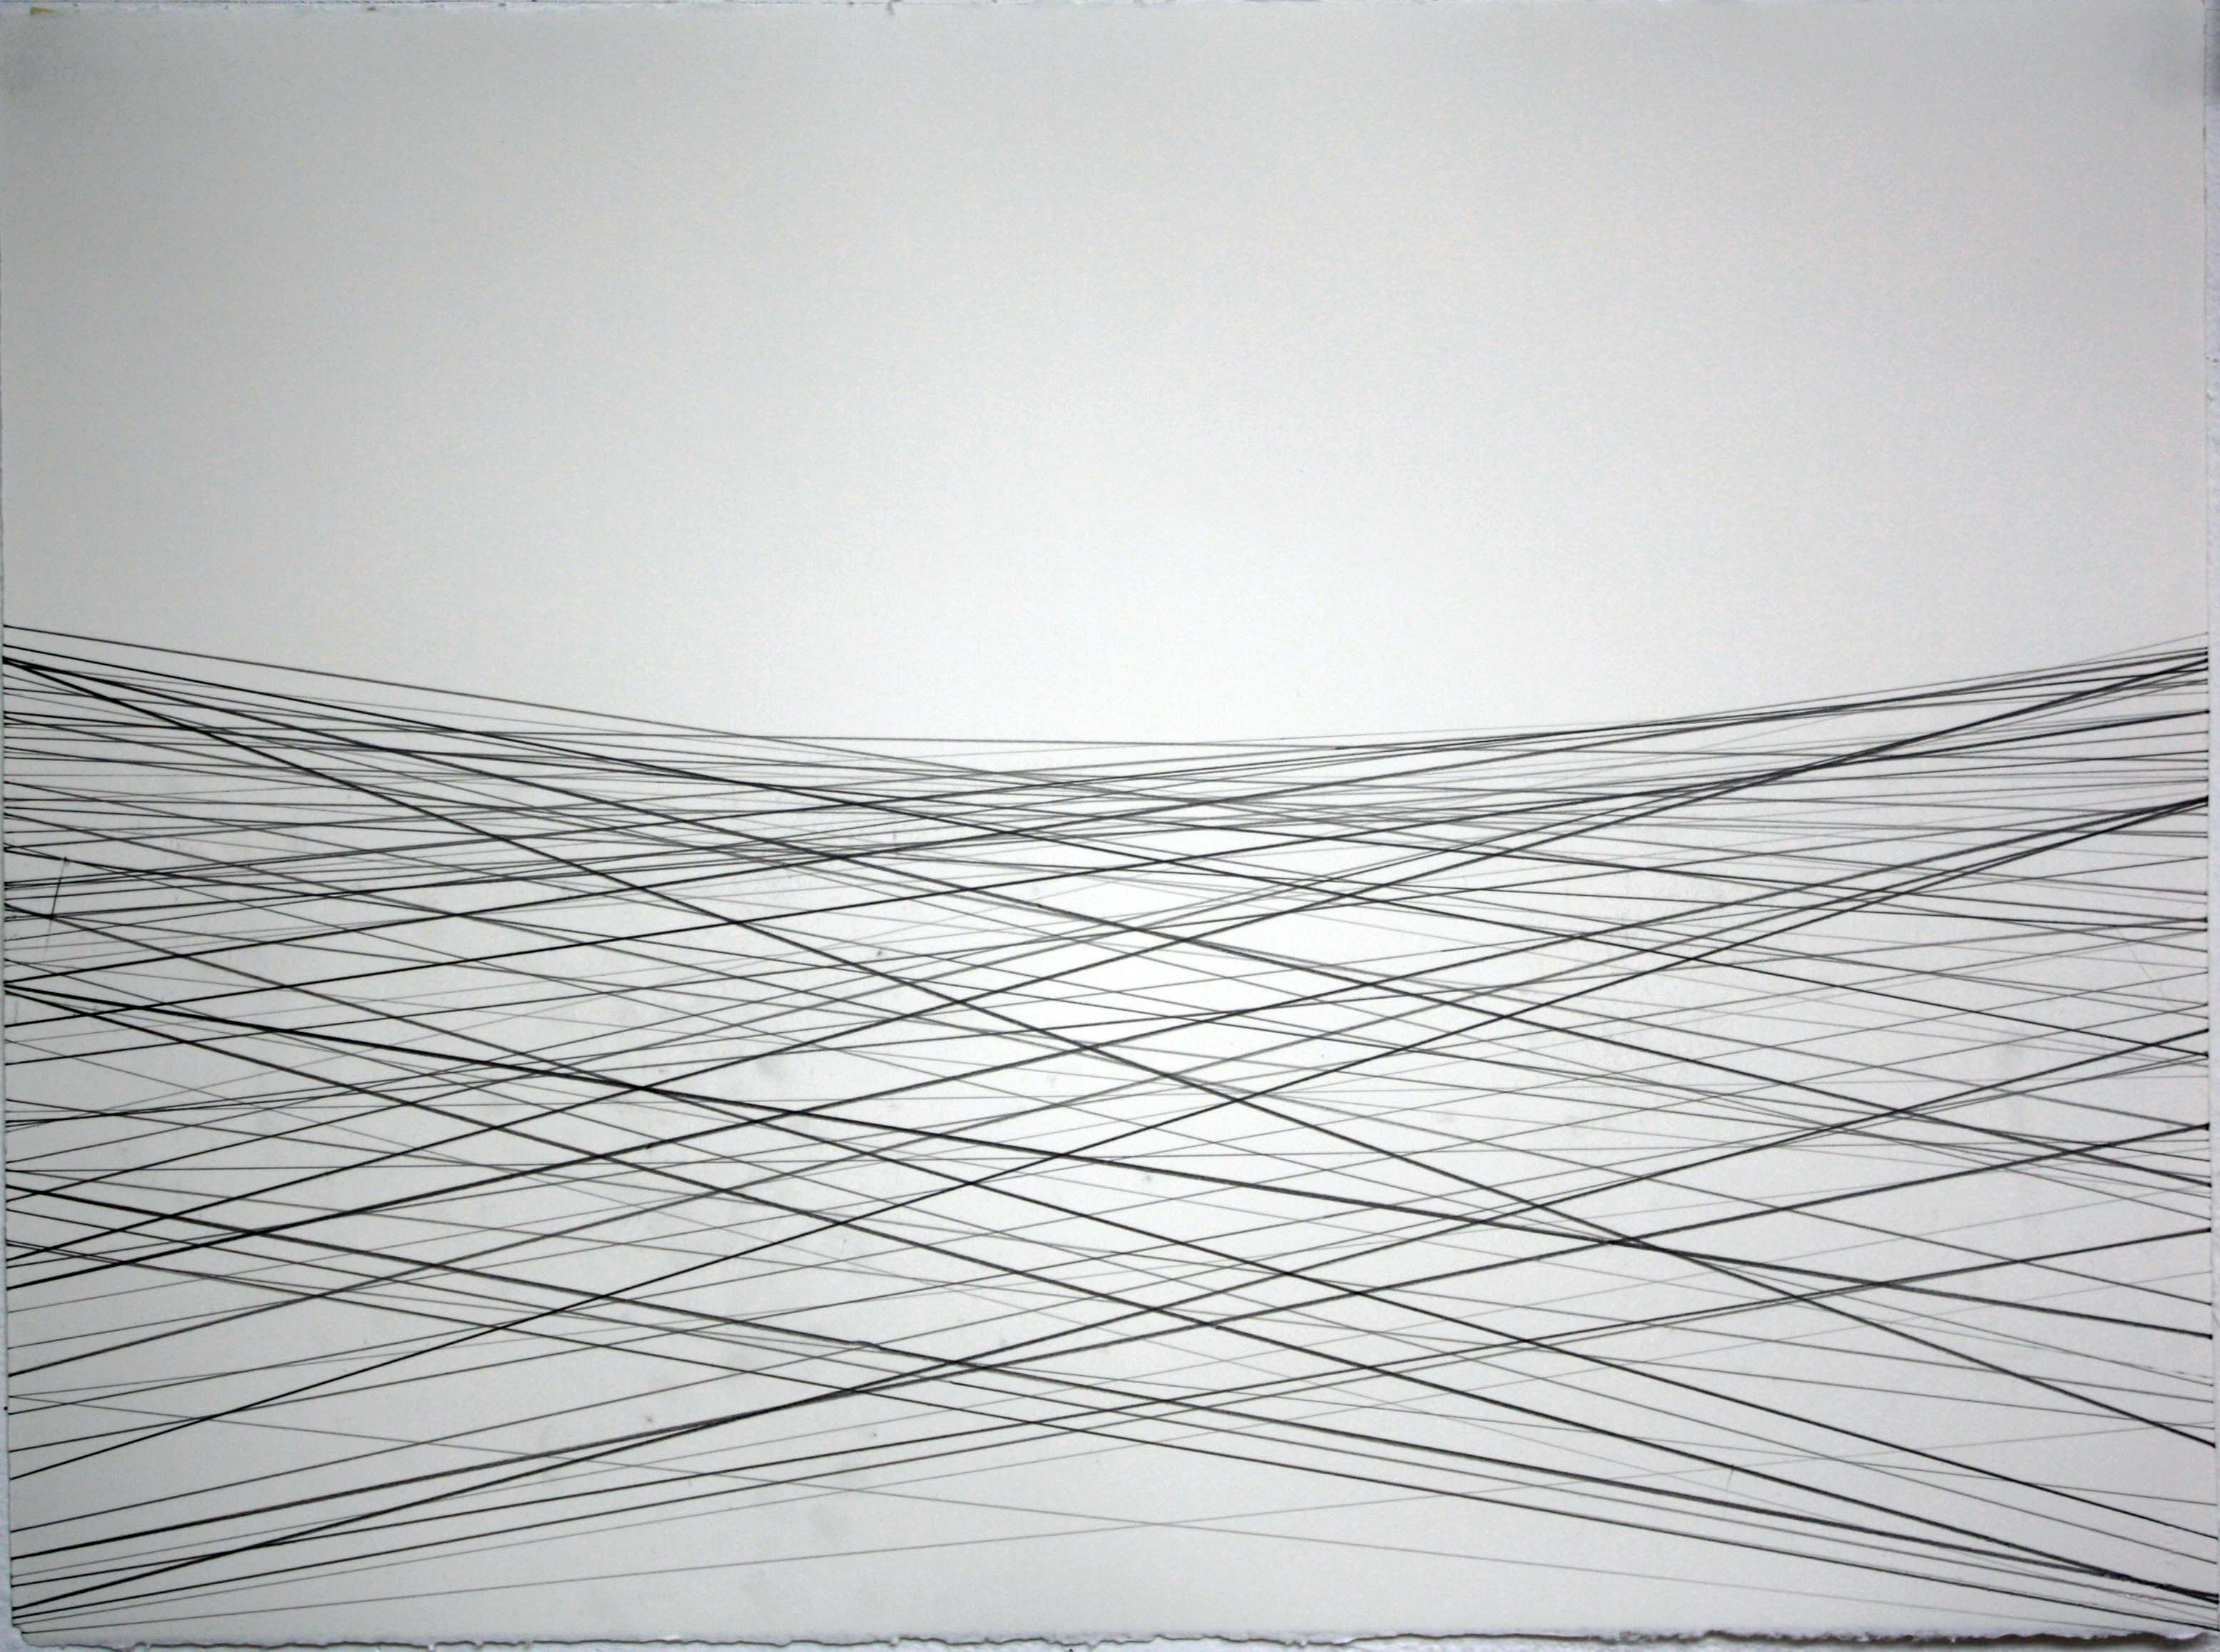 Horizontal Line Art : Straight lines curved horizontal even vertical